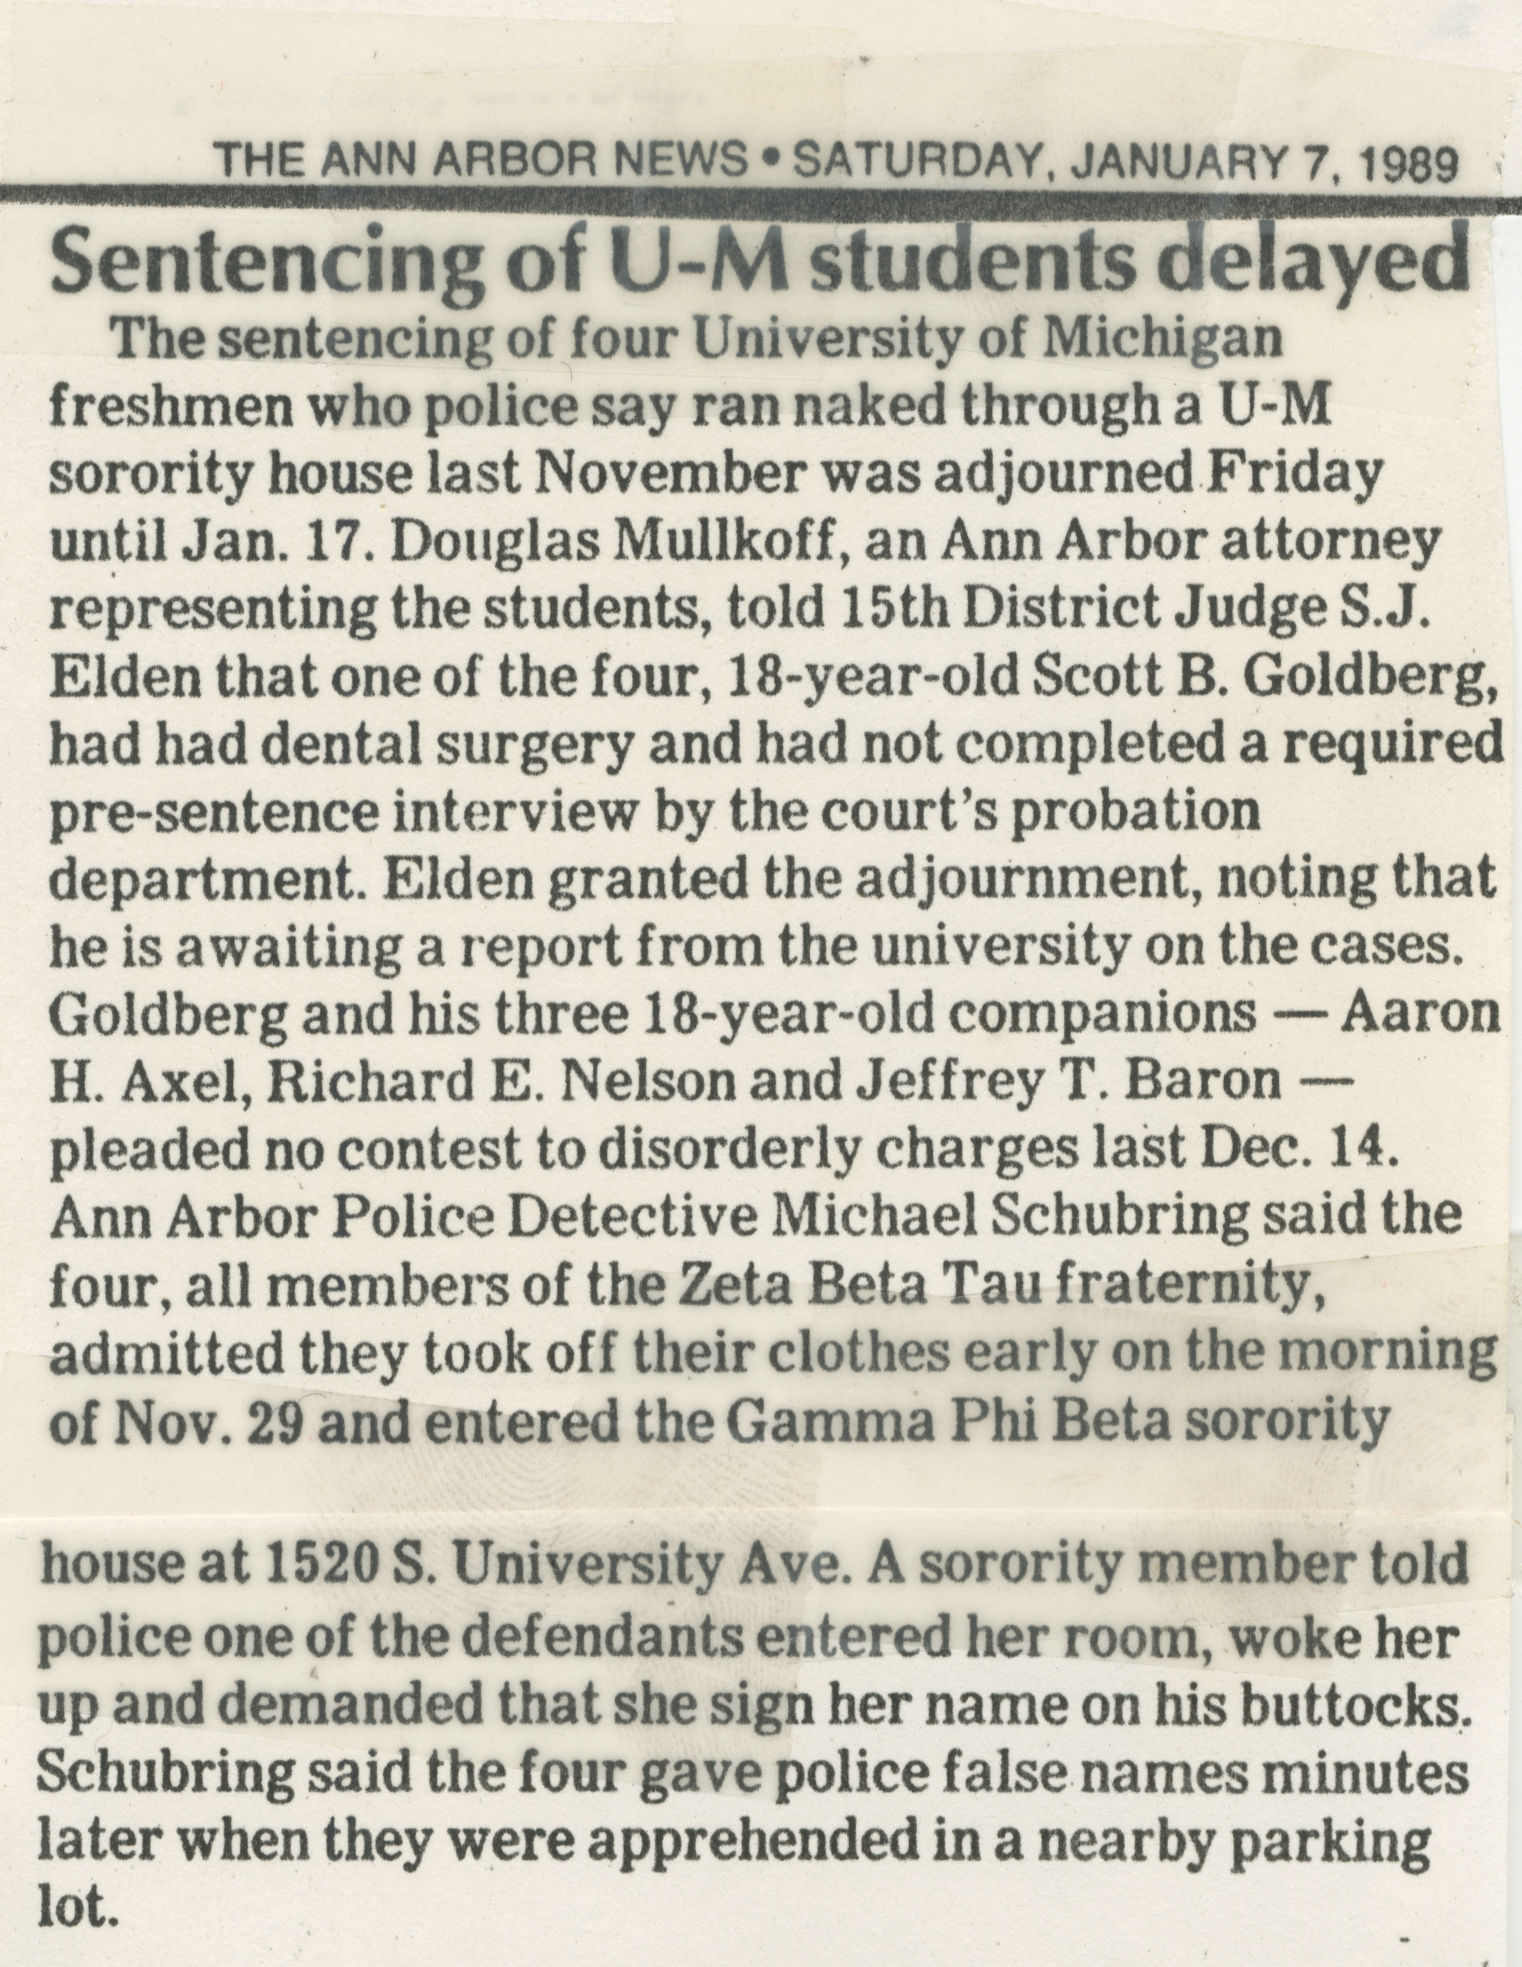 Sentencing Of U-M Students Delayed image